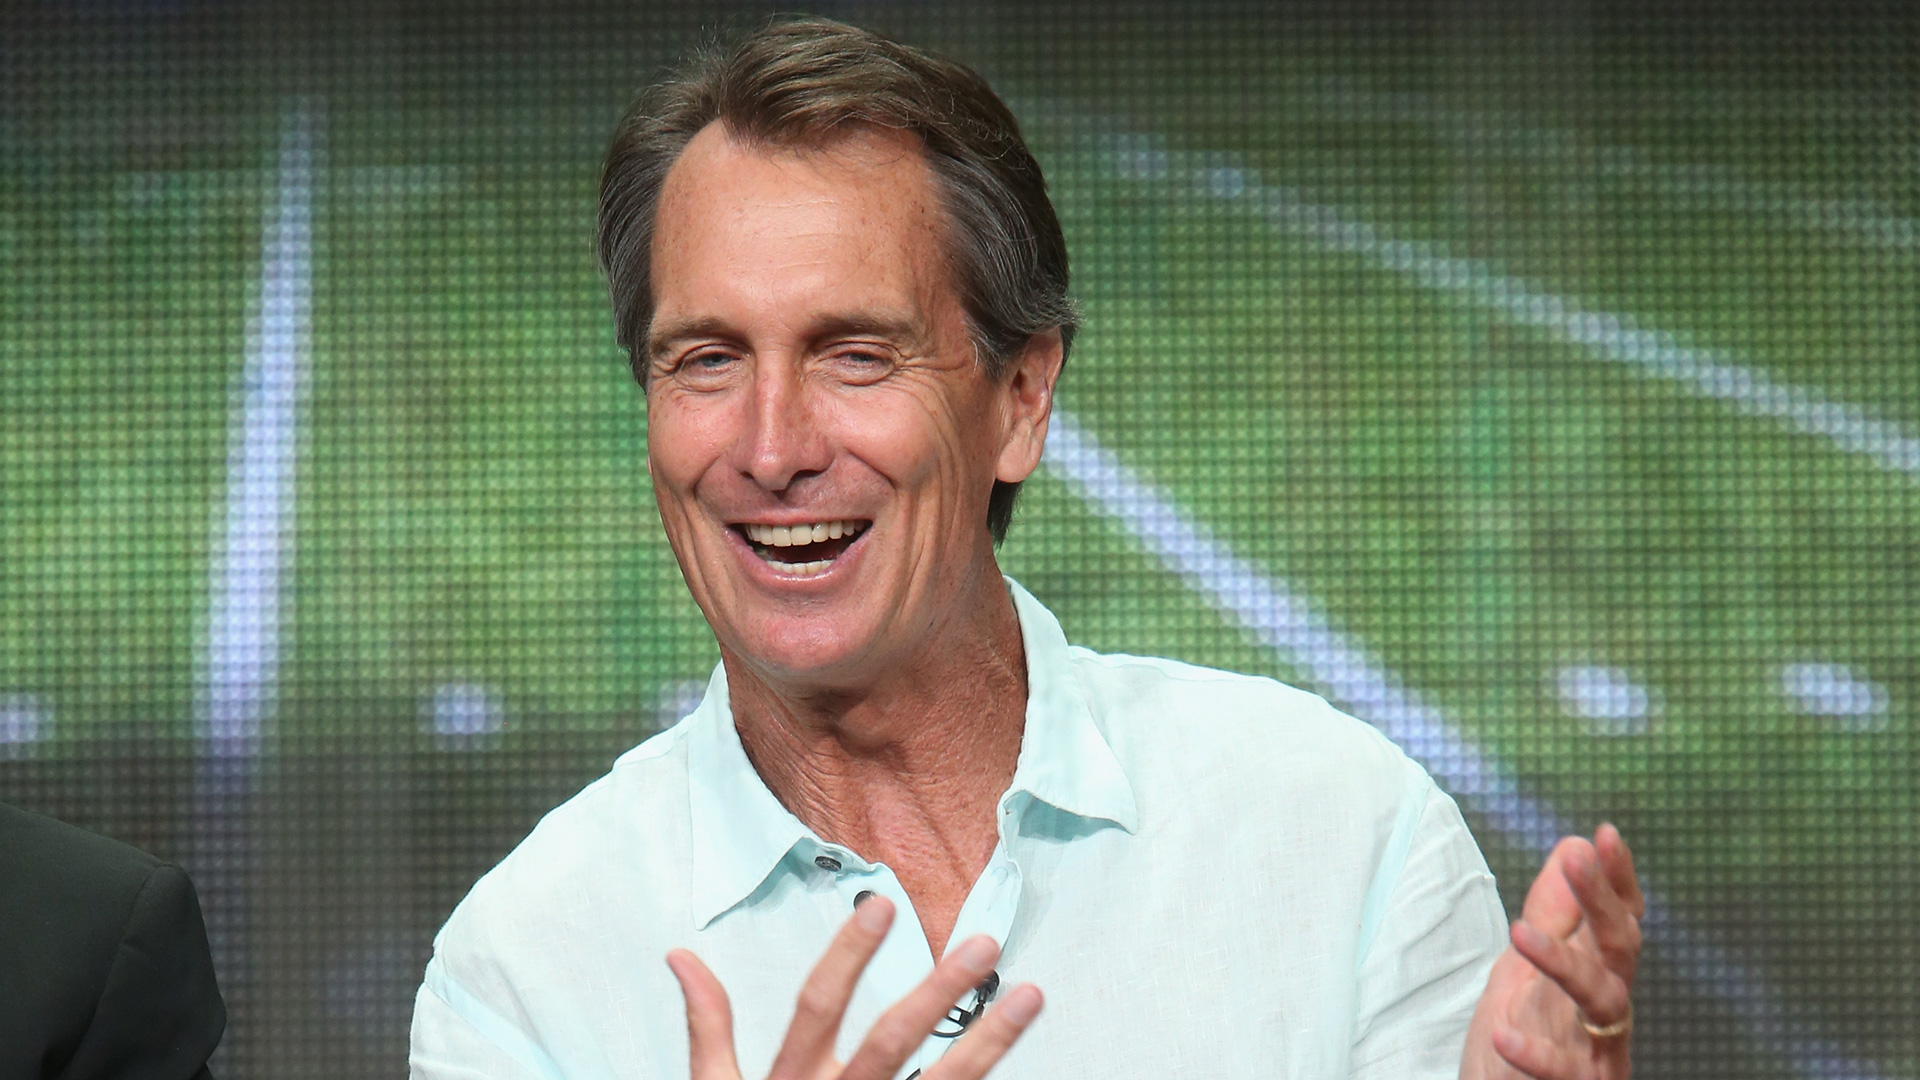 Cris Collinsworth calls out Eagles' controversial QB decision: 'I couldn't have done it'